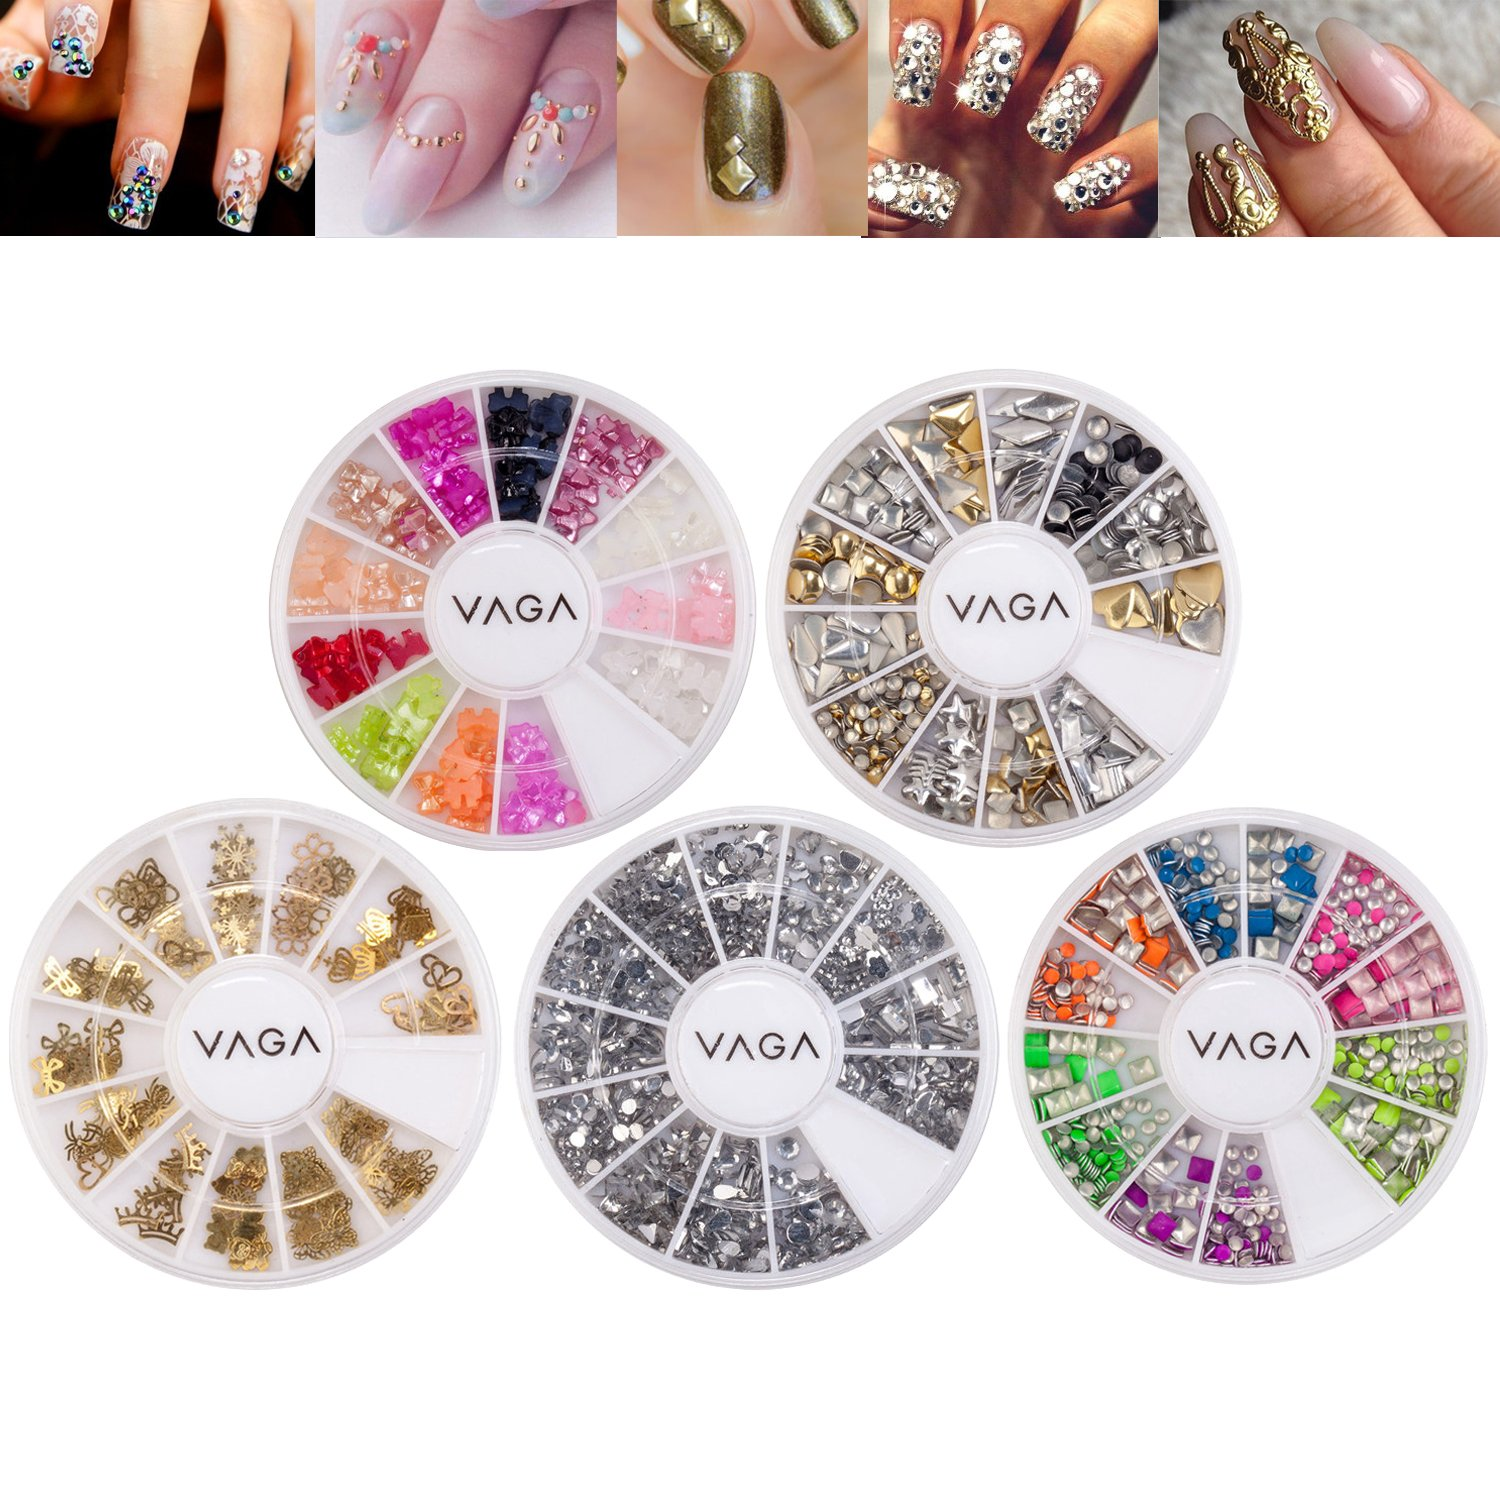 Professional Premium 3D Nail Art Decorations Kit Set With Different Designs of Golden Metal, Gold, Silver And Neon Colors Studs, Pearl Bow Ties And Rhinestones / Gemstones / Crystals By VAGA©